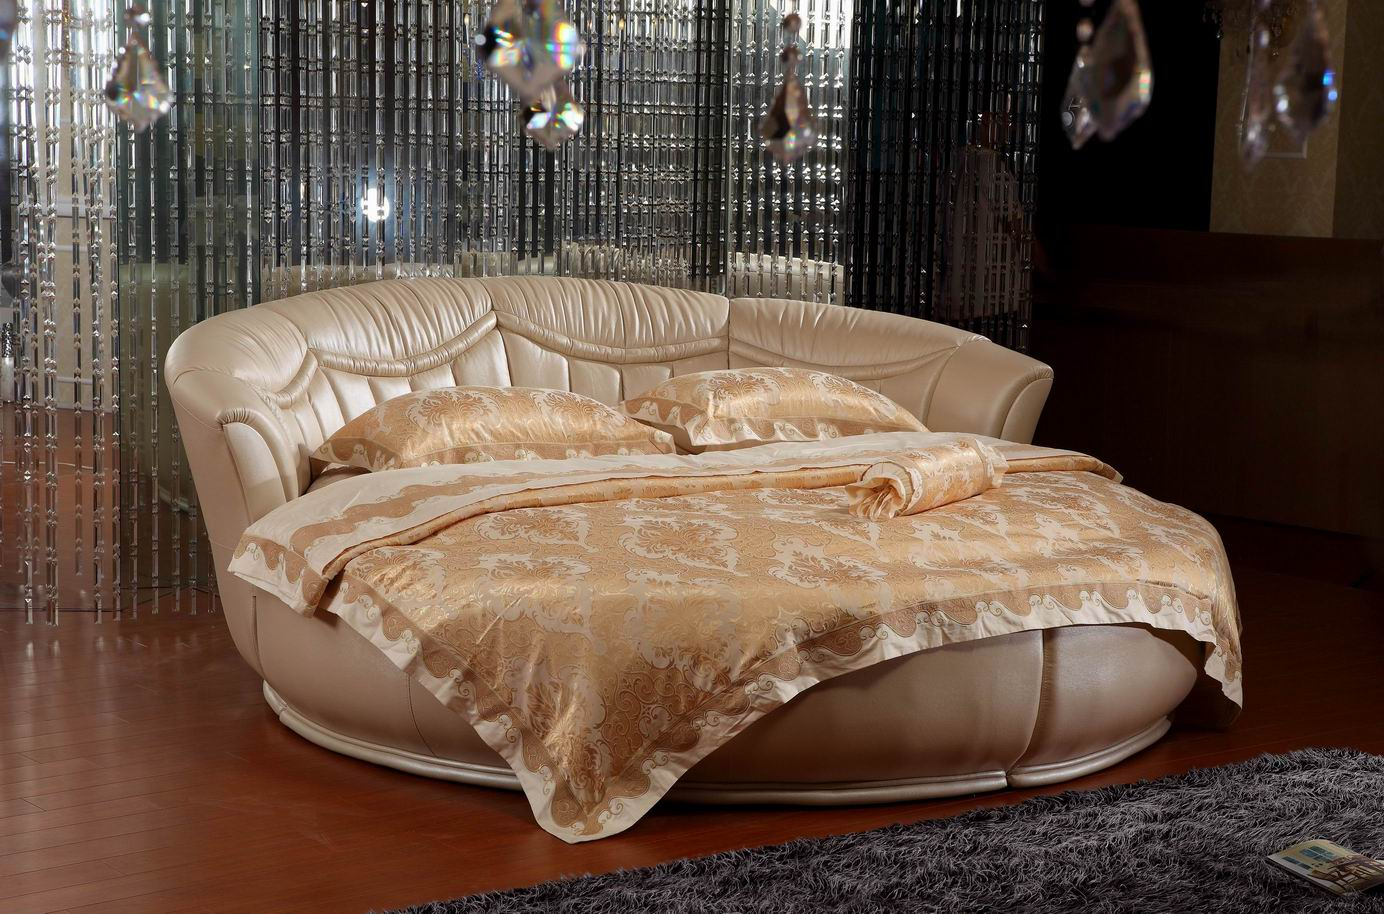 round flagrant also along mattress in bed frame mg with circular and